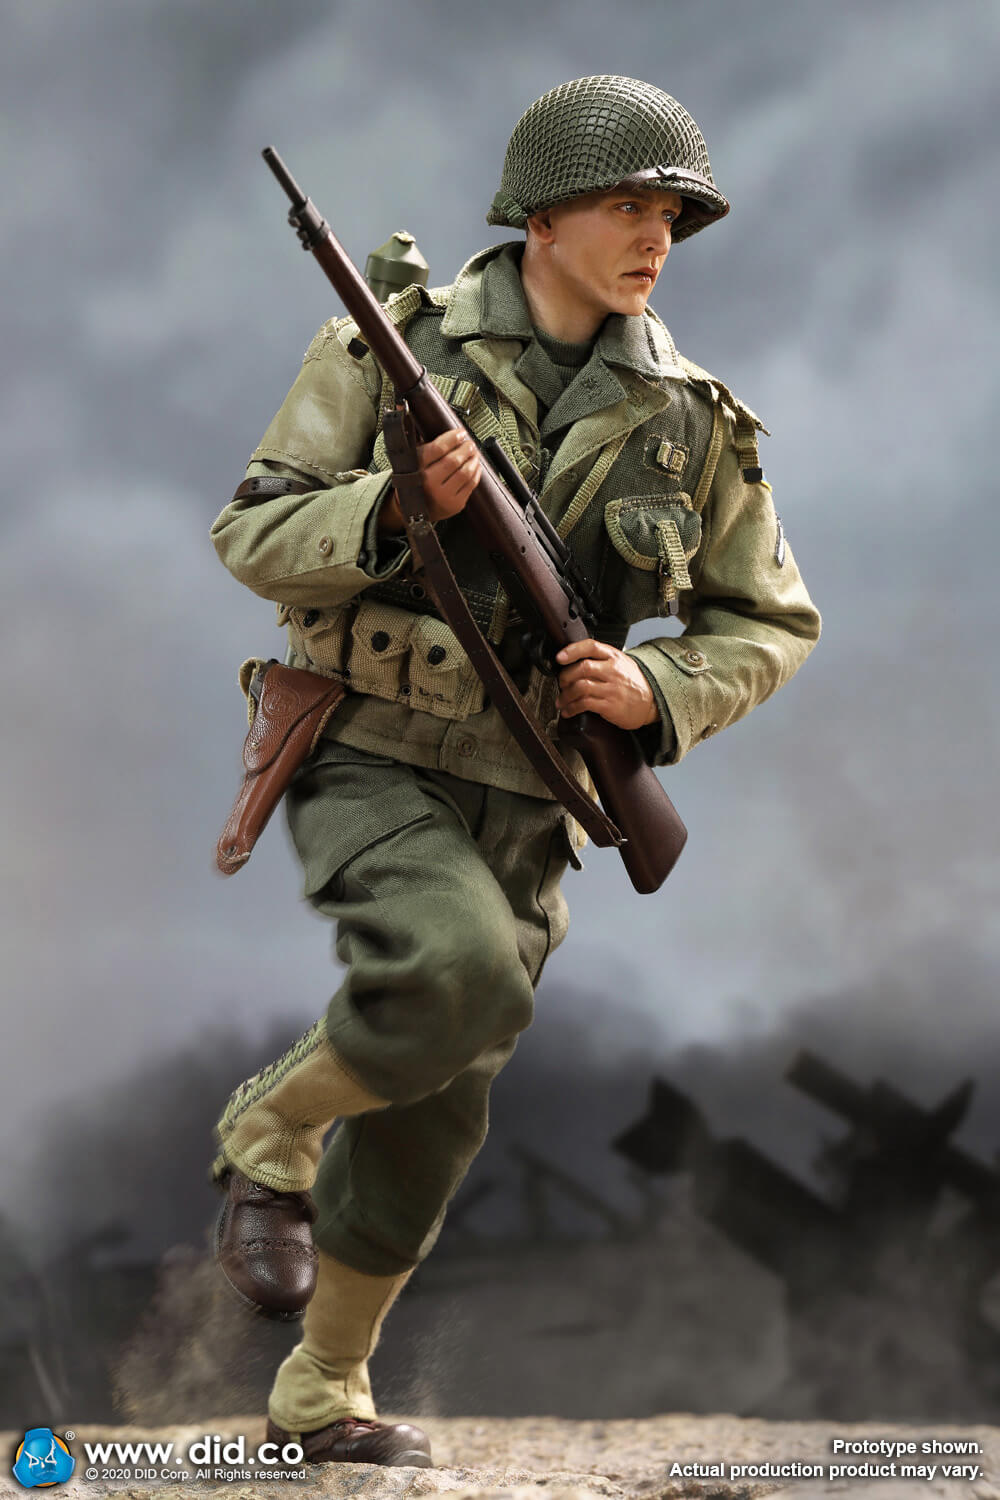 DiD - NEW PRODUCT: DiD: A80144 WWII US 2nd Ranger Battalion Series 4 Private Jackson 8348